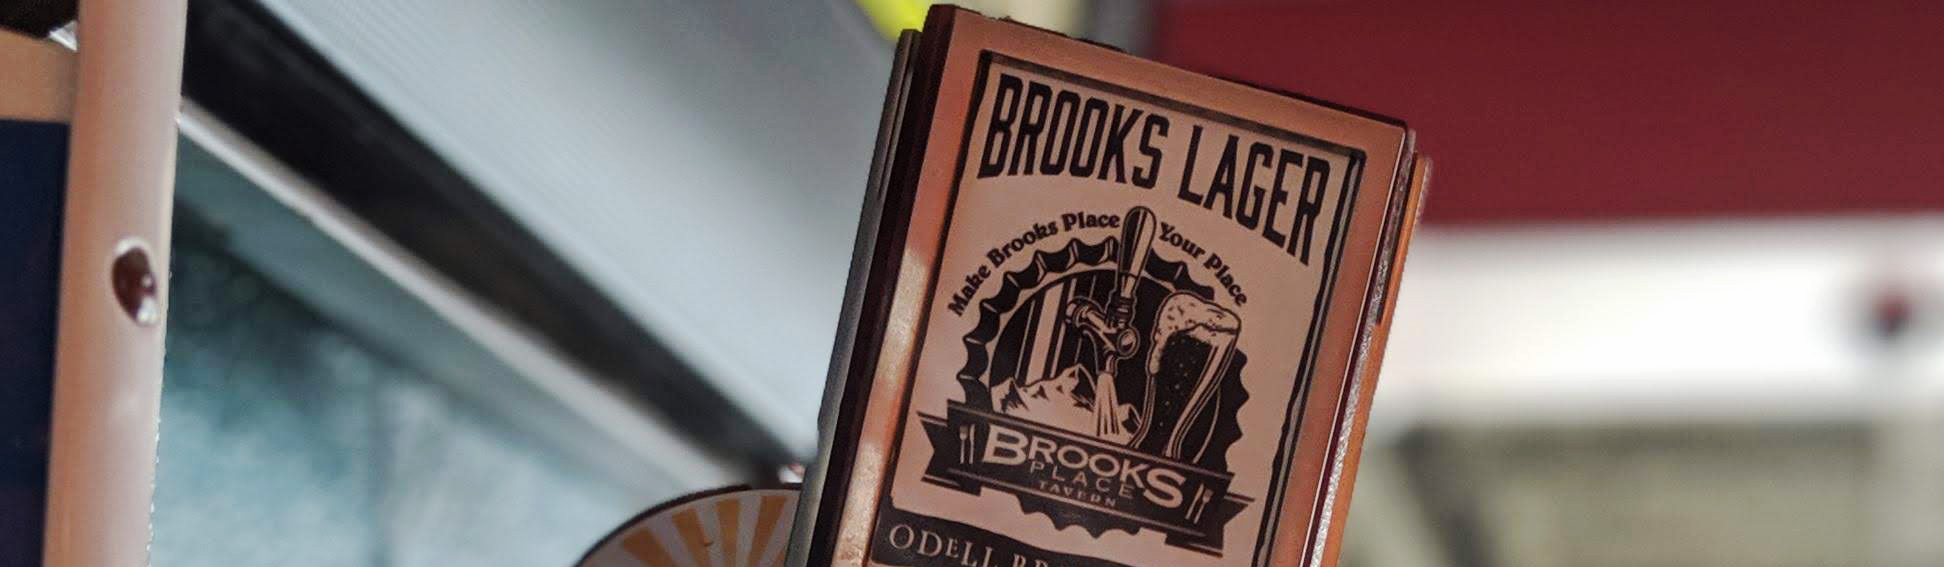 Brooks Lager